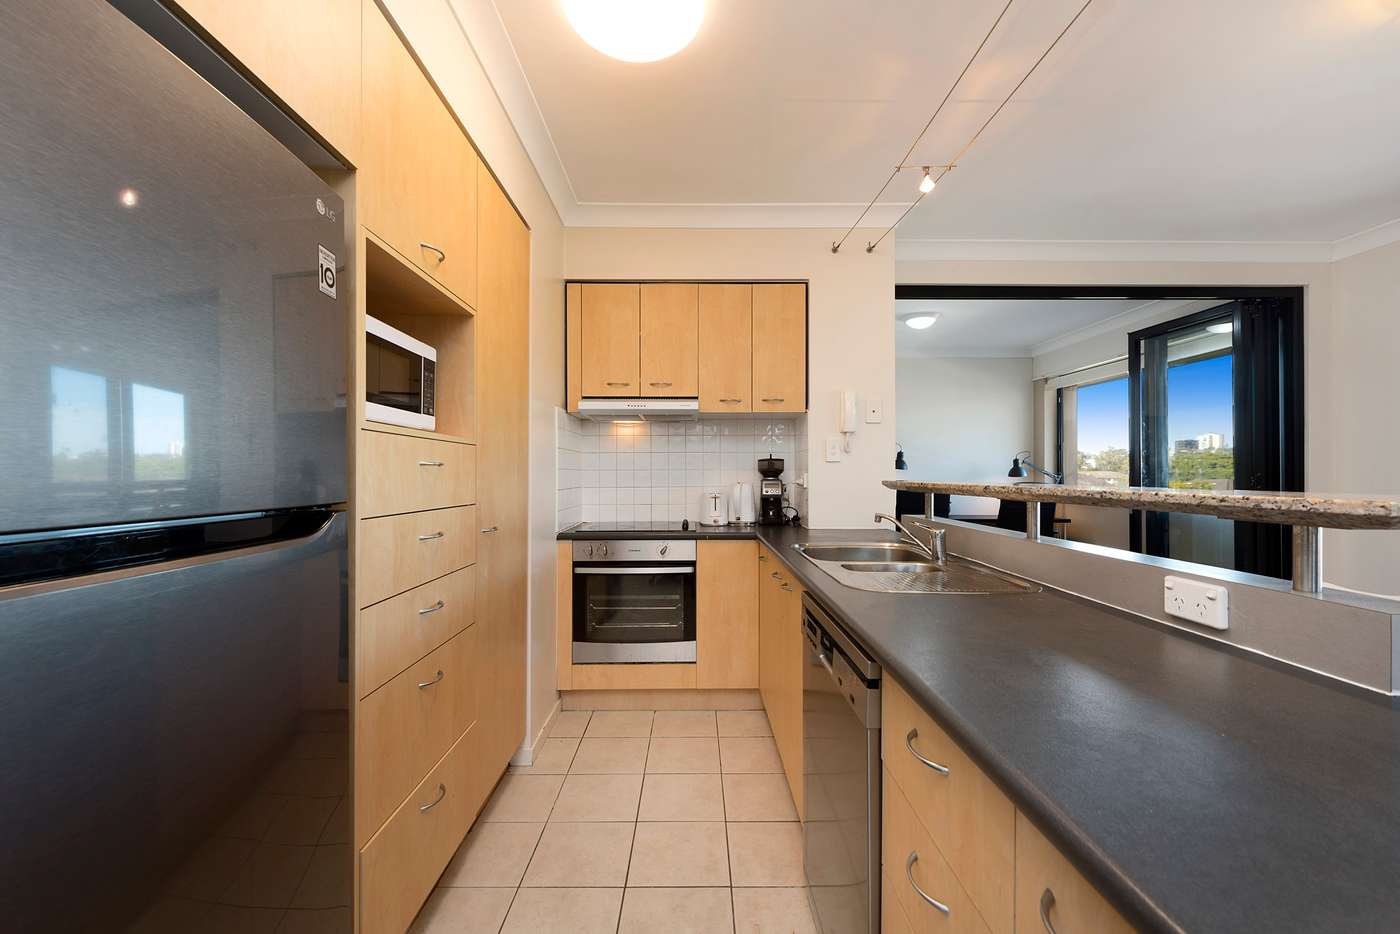 Fifth view of Homely apartment listing, 12/42-48 Durham Street, St Lucia QLD 4067